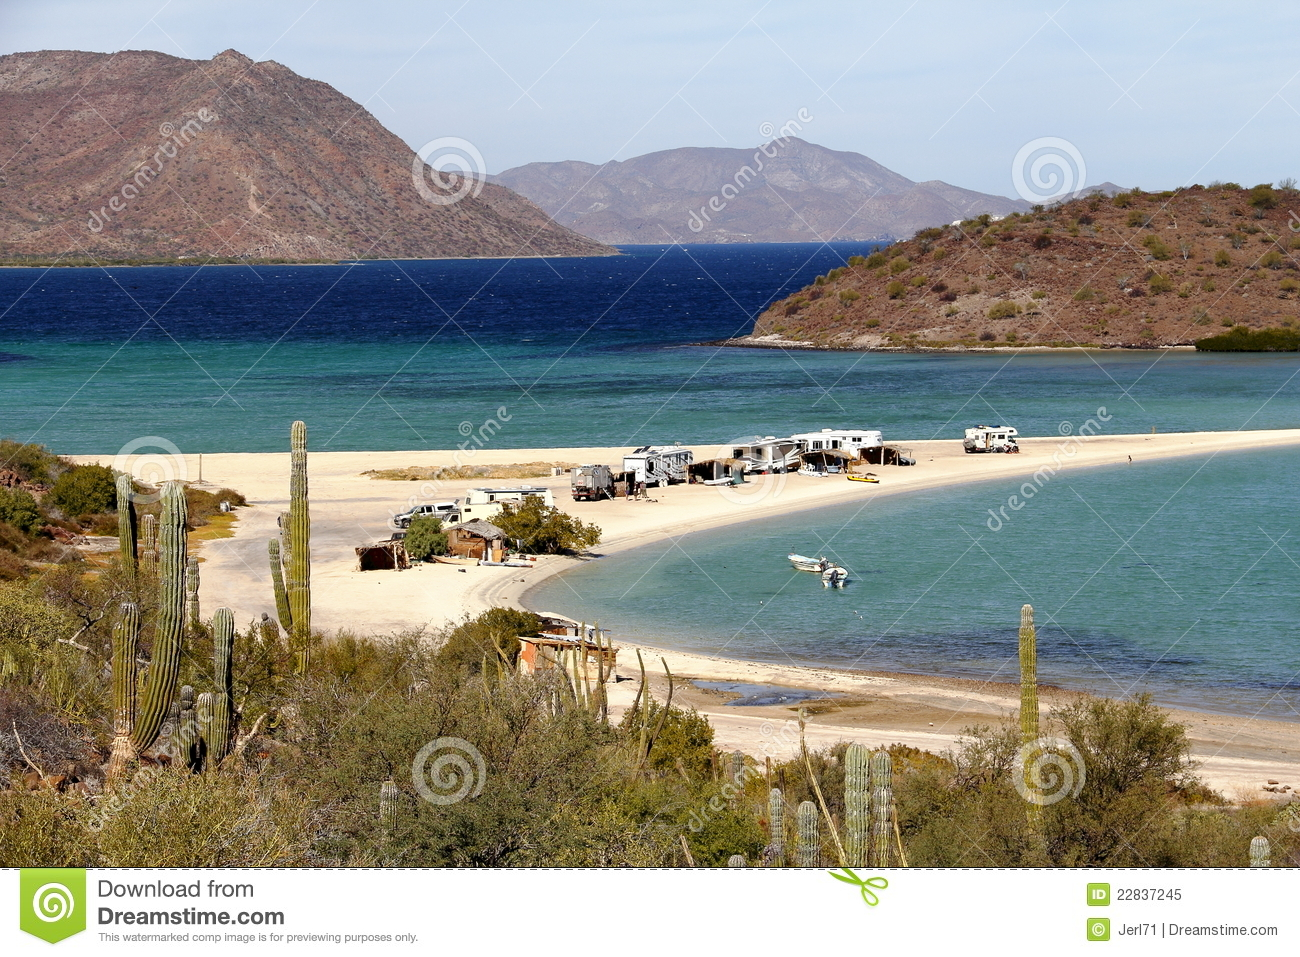 map of baja california with Royalty Free Stock Photo Loreto Xxi Image22837245 on Hotel Review G312659 D305769 Reviews Radisson Blu Hotel Waterfront Cape Town Cape Town Central Western Cape further Cochim C3 AD in addition 5905011335 additionally Mexicali as well La Paz.